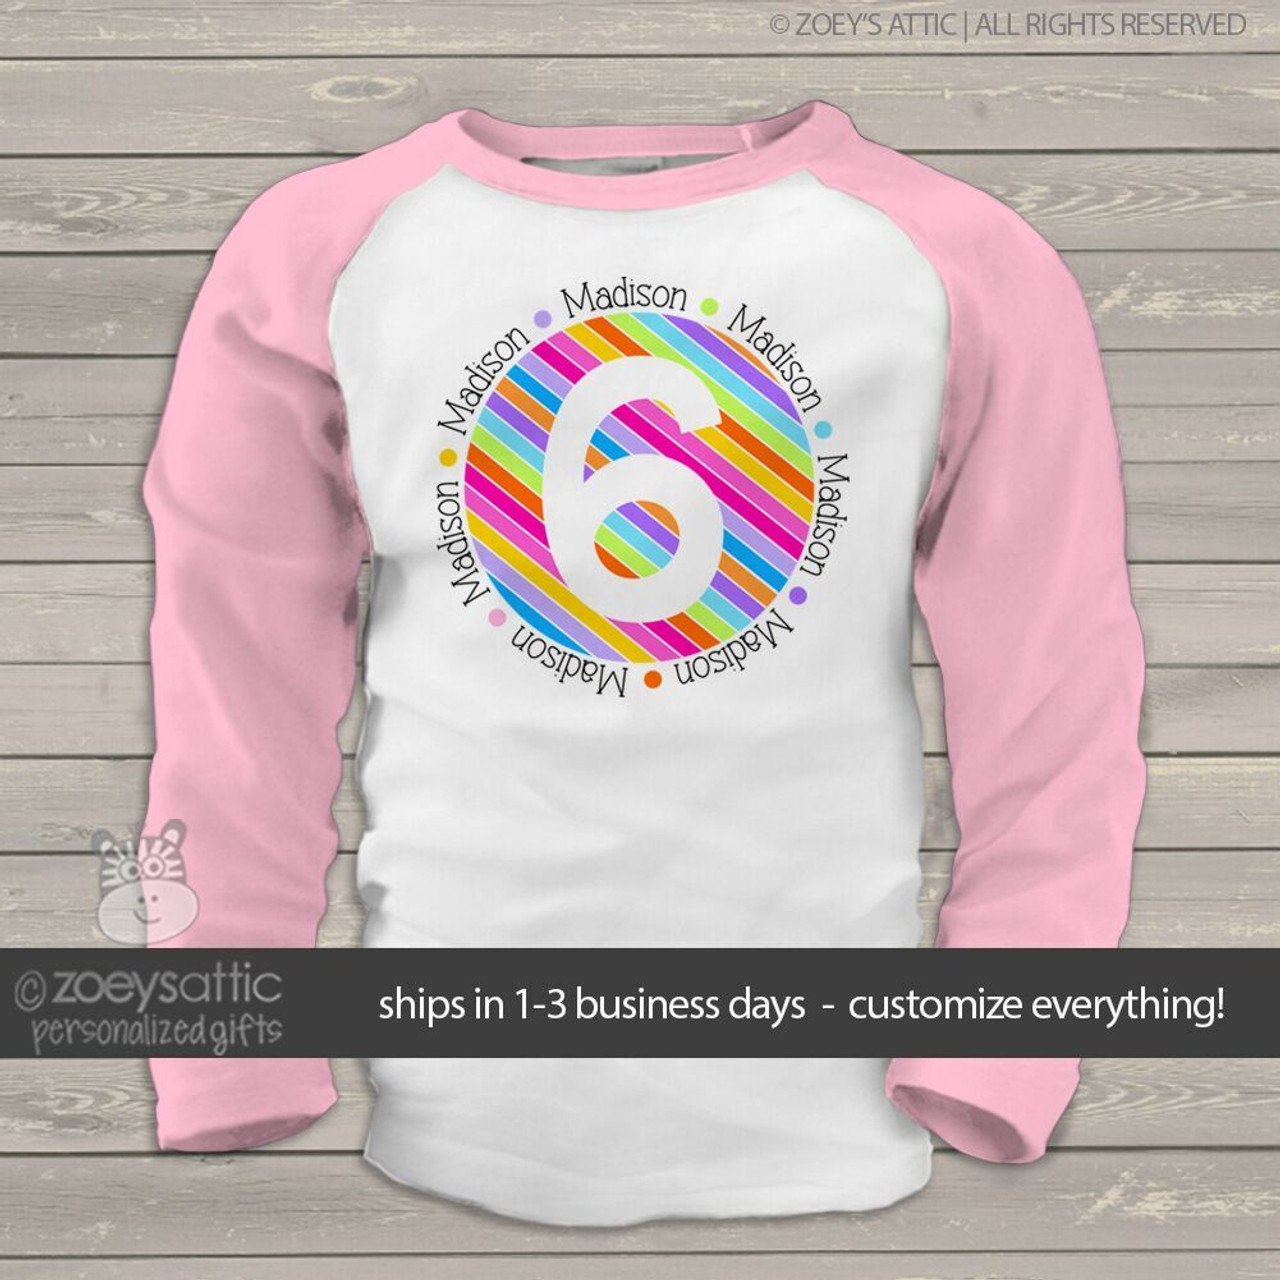 Birthday Shirt Girl Rainbow Stripes Personalized Raglan Tshirt Add To Cart Buy